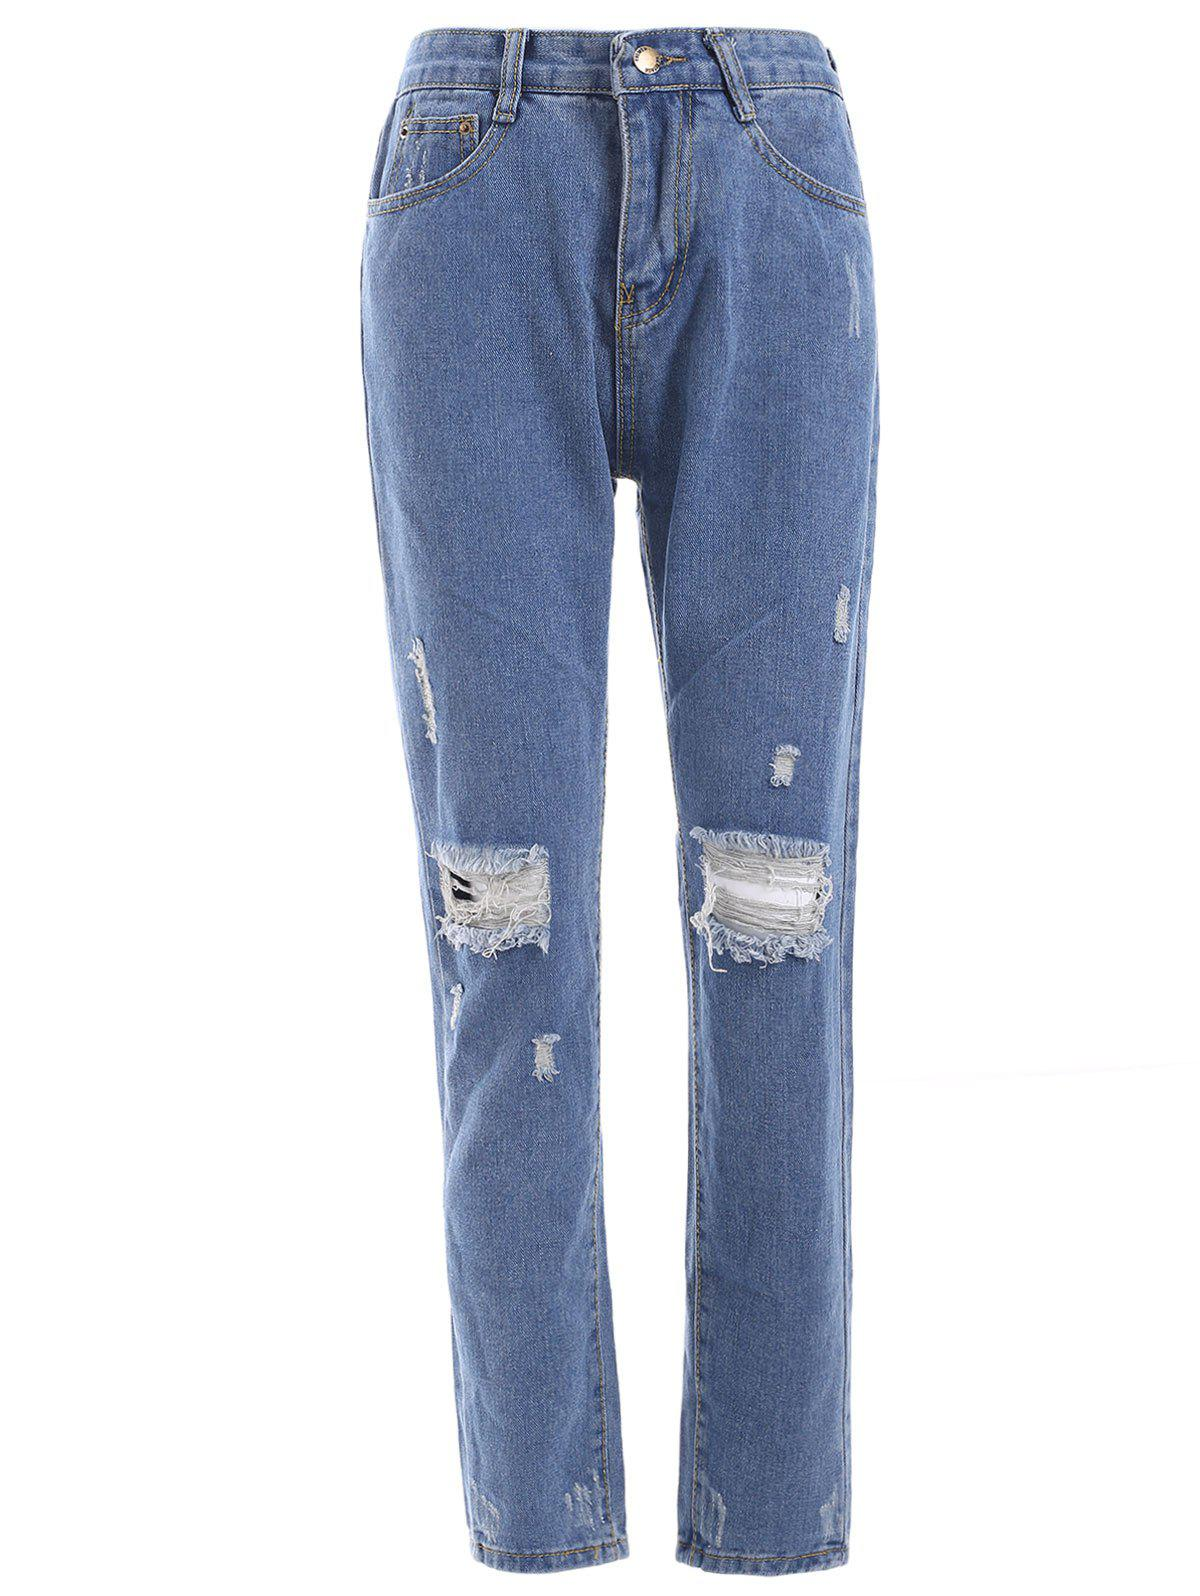 Shops Fresh Distressed Ripped Loose-Fitted Pencil Jeans